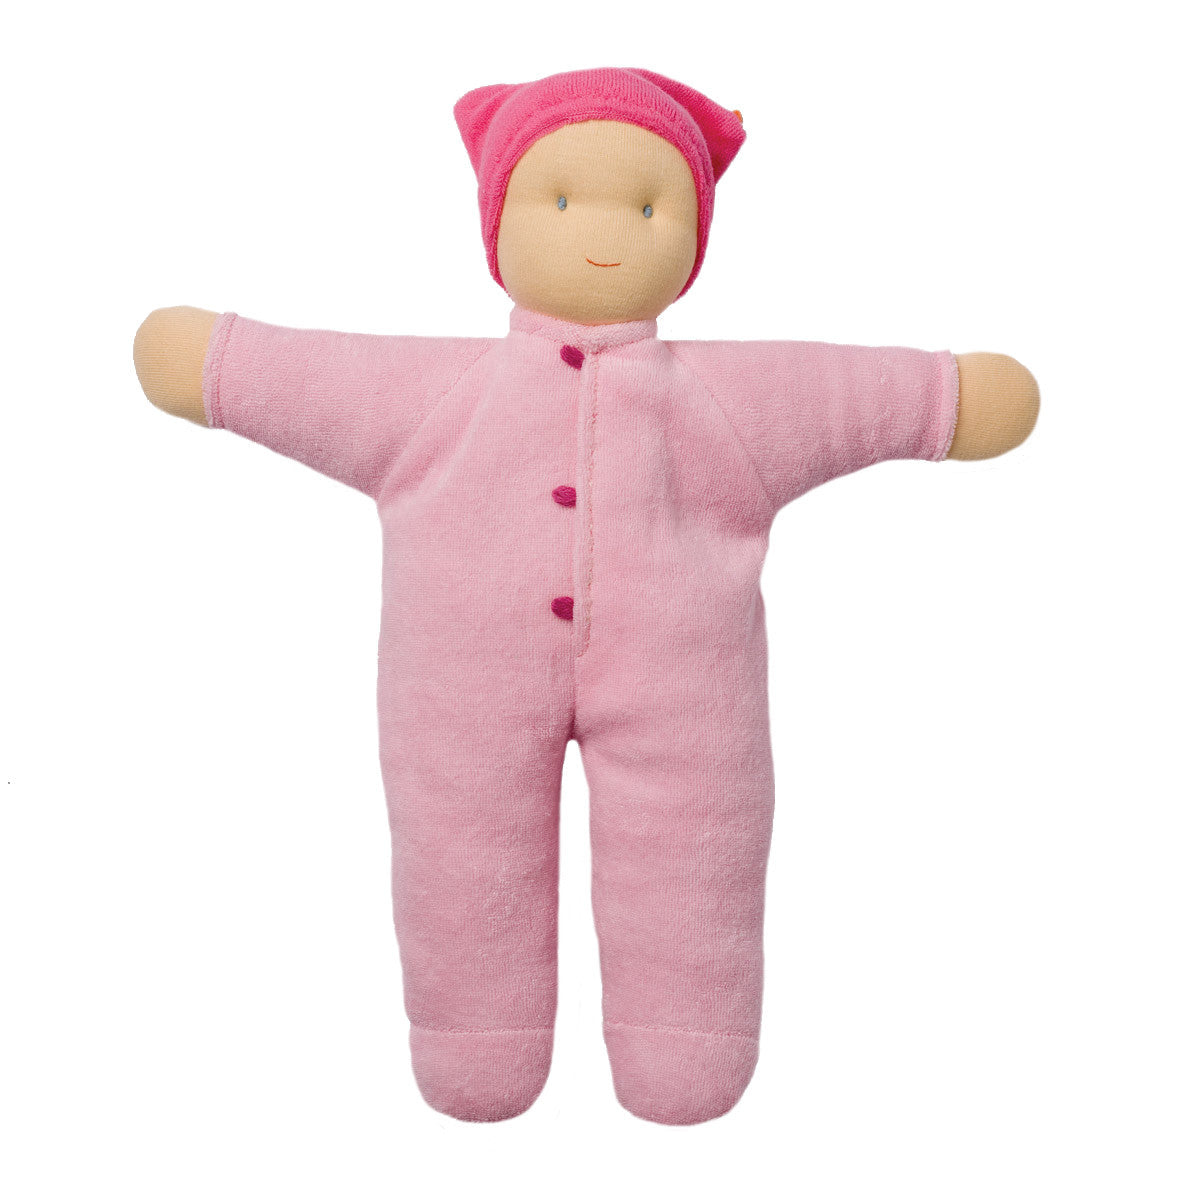 cuddle doll - Nova Natural Toys & Crafts - 5